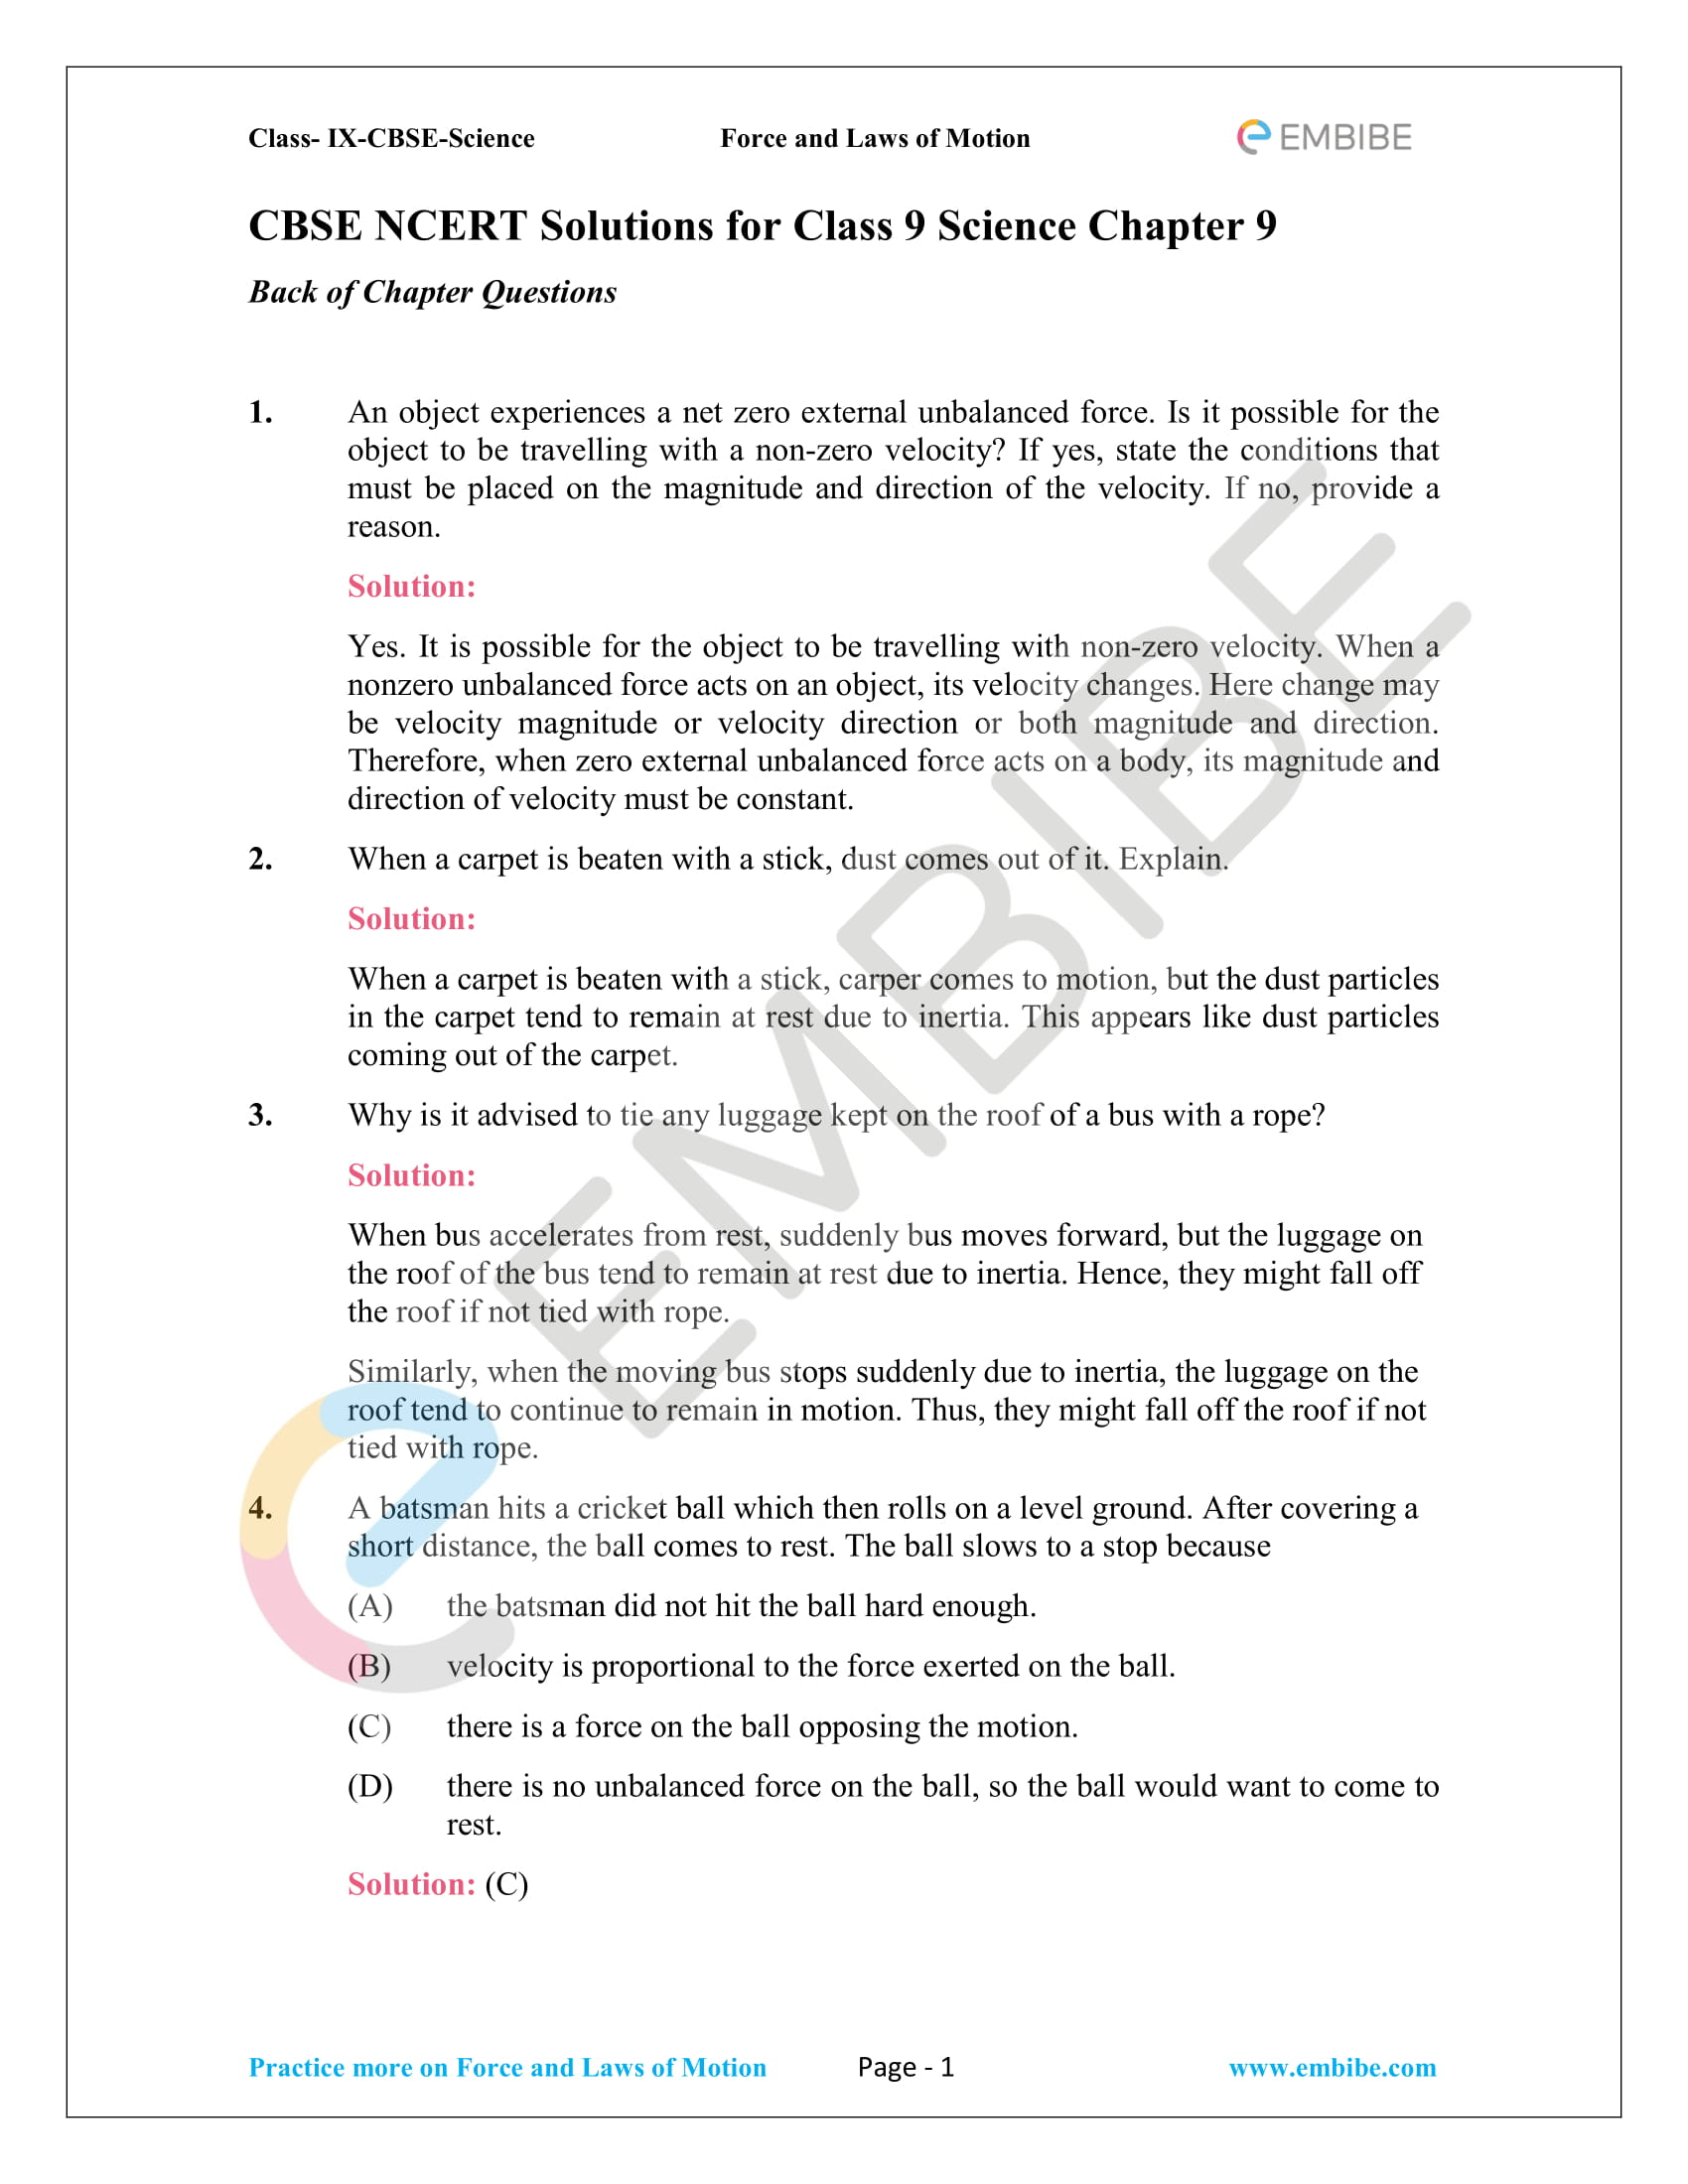 CBSE NCERT Solutions For Class 9 Science Chapter 9: Force